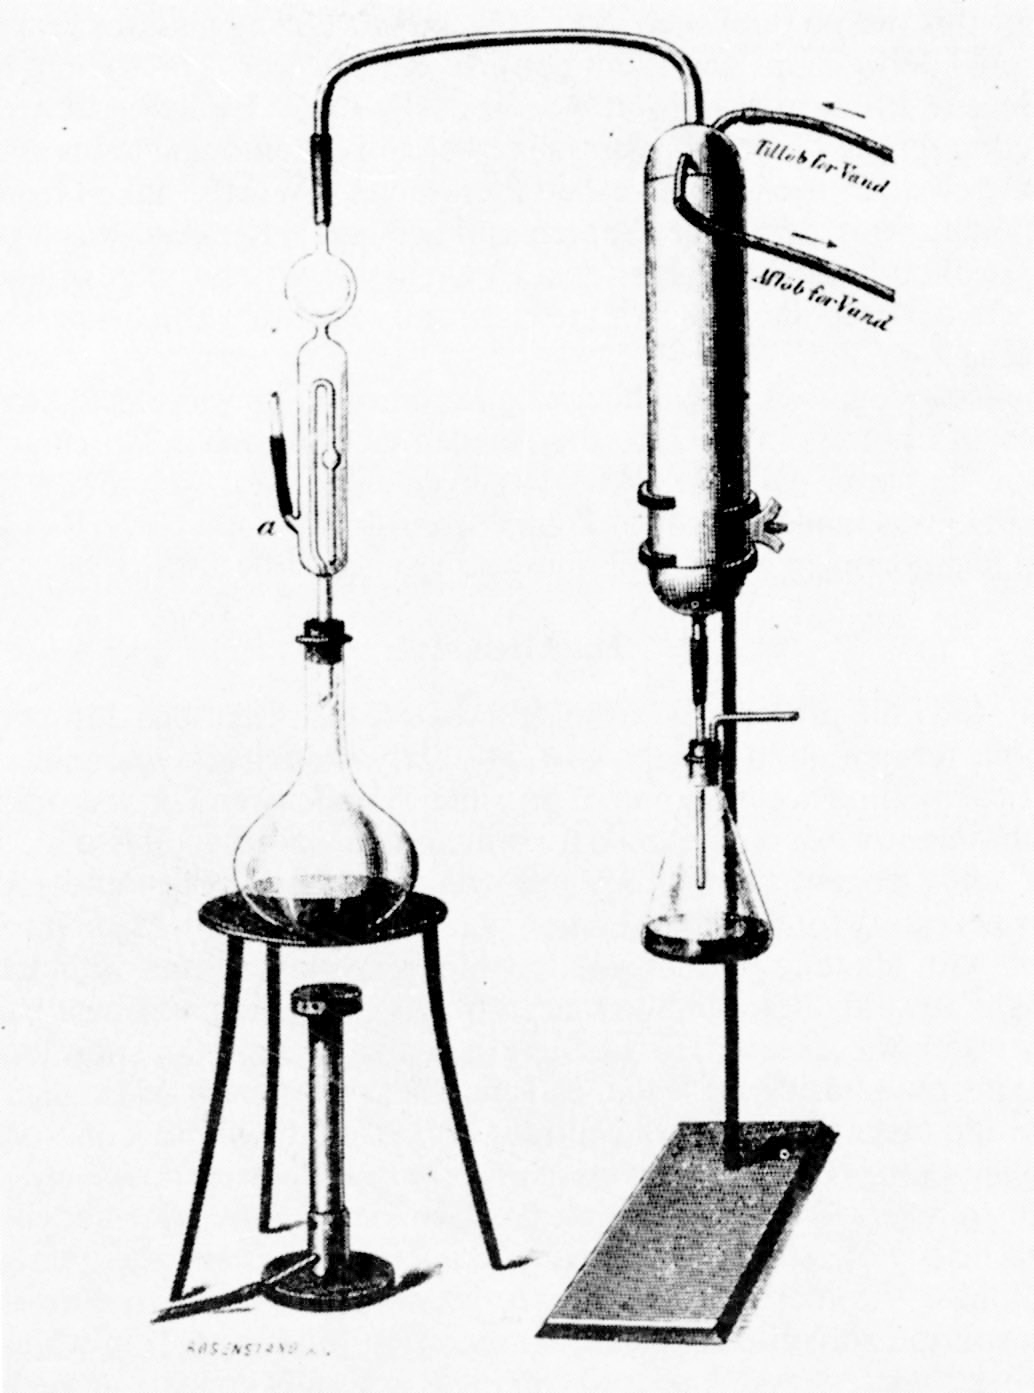 File Erlenmeyer Flask in addition EXP 4 moreover Stock Photos Pouring Clear Liquid Image3744303 together with Stock Illustration Temperature Scales in addition File Methyl anthranilate. on flask usage